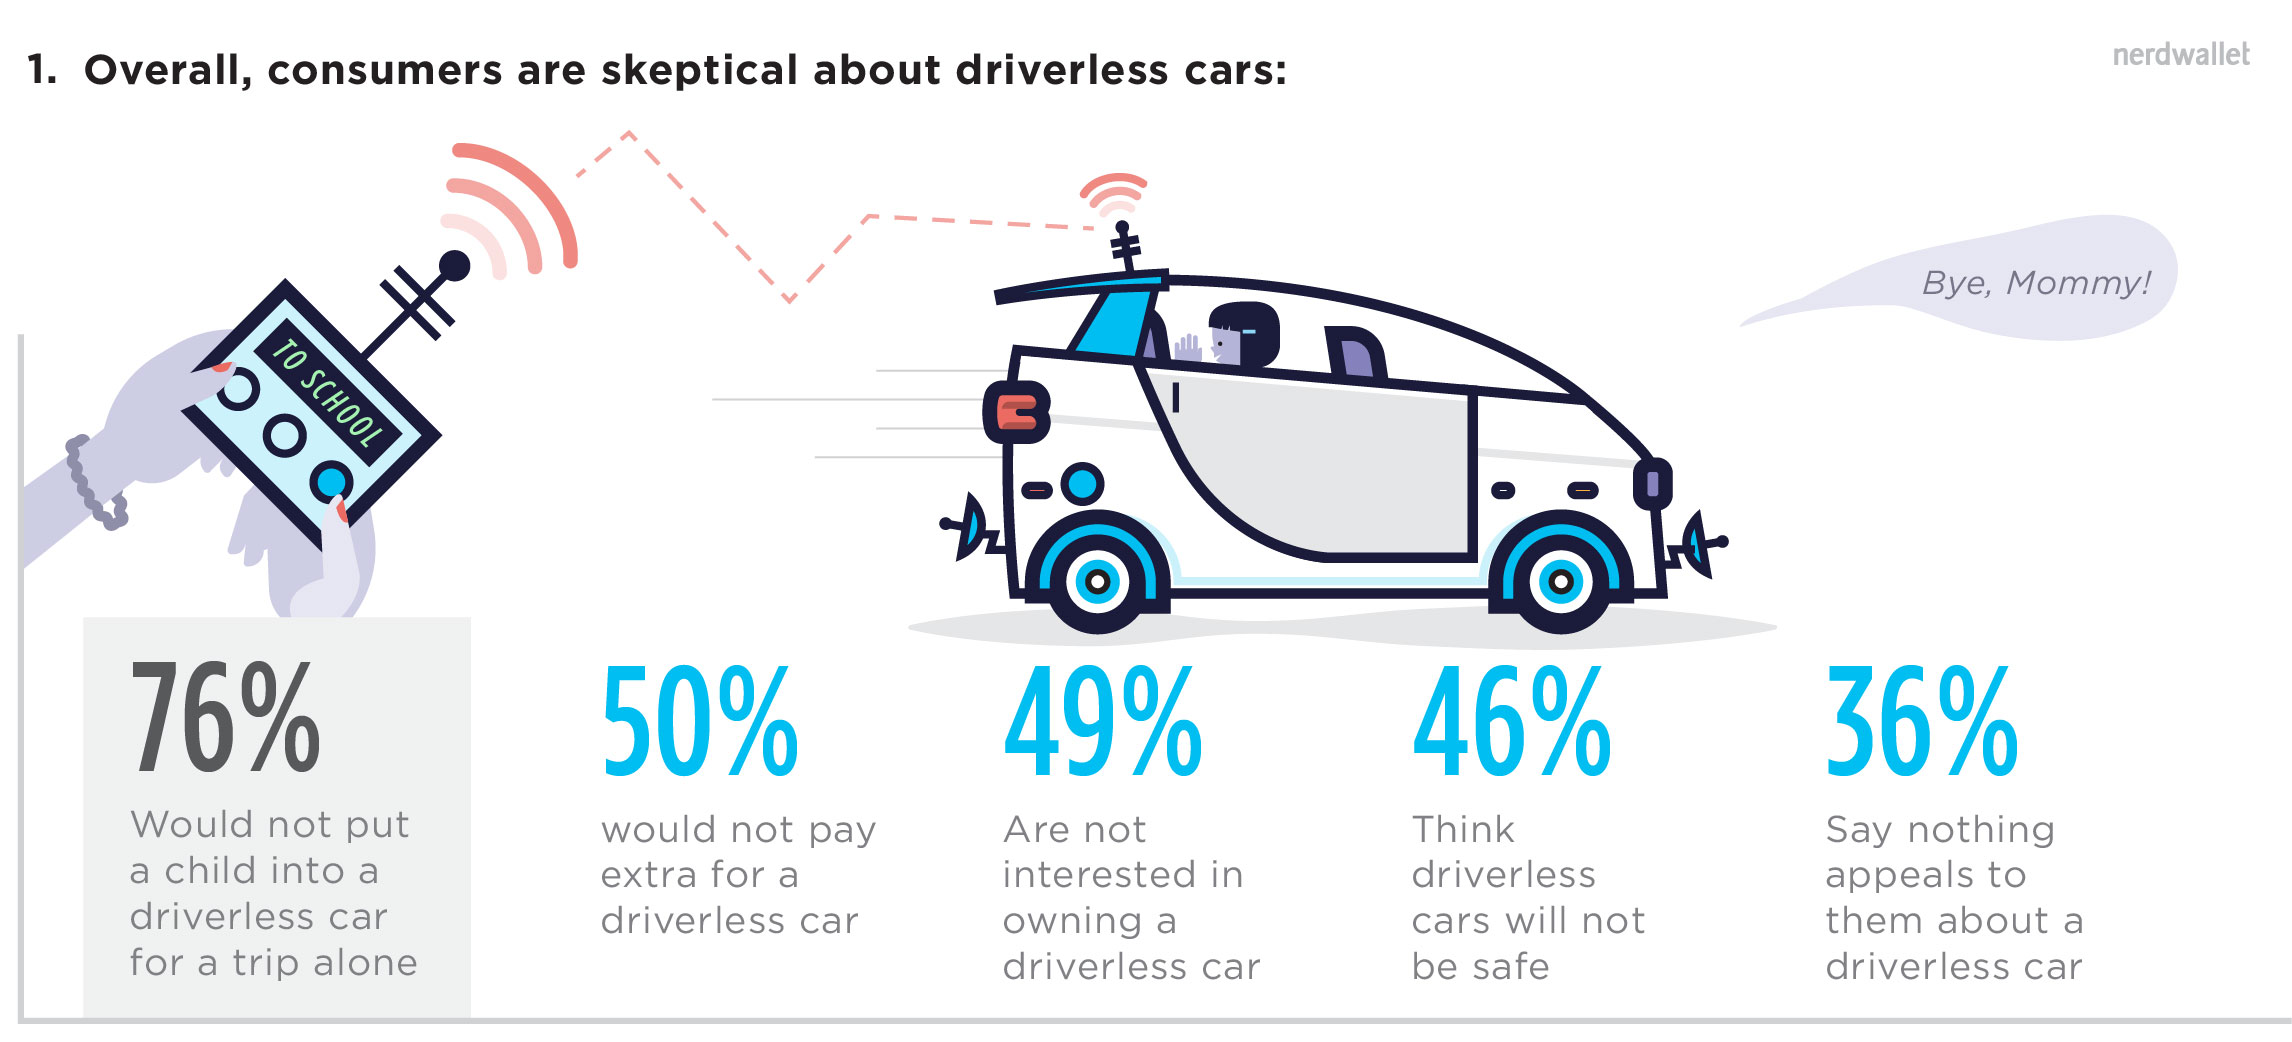 Consumers Are Skeptical About Driverless Cars